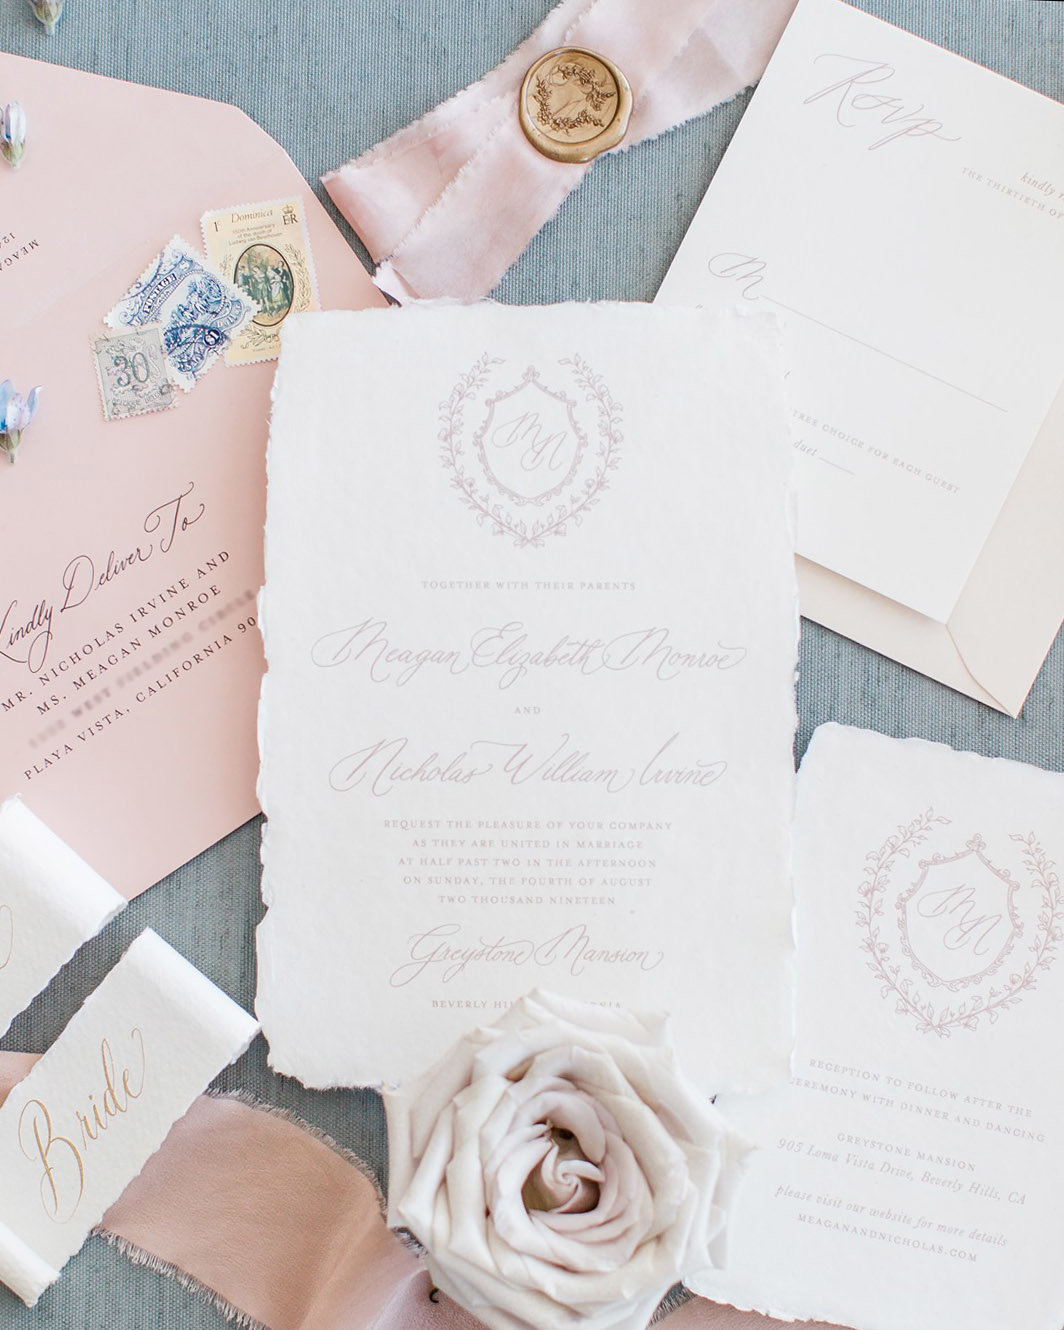 Pemberley suite by Dominique Alba blush on white handmade paper